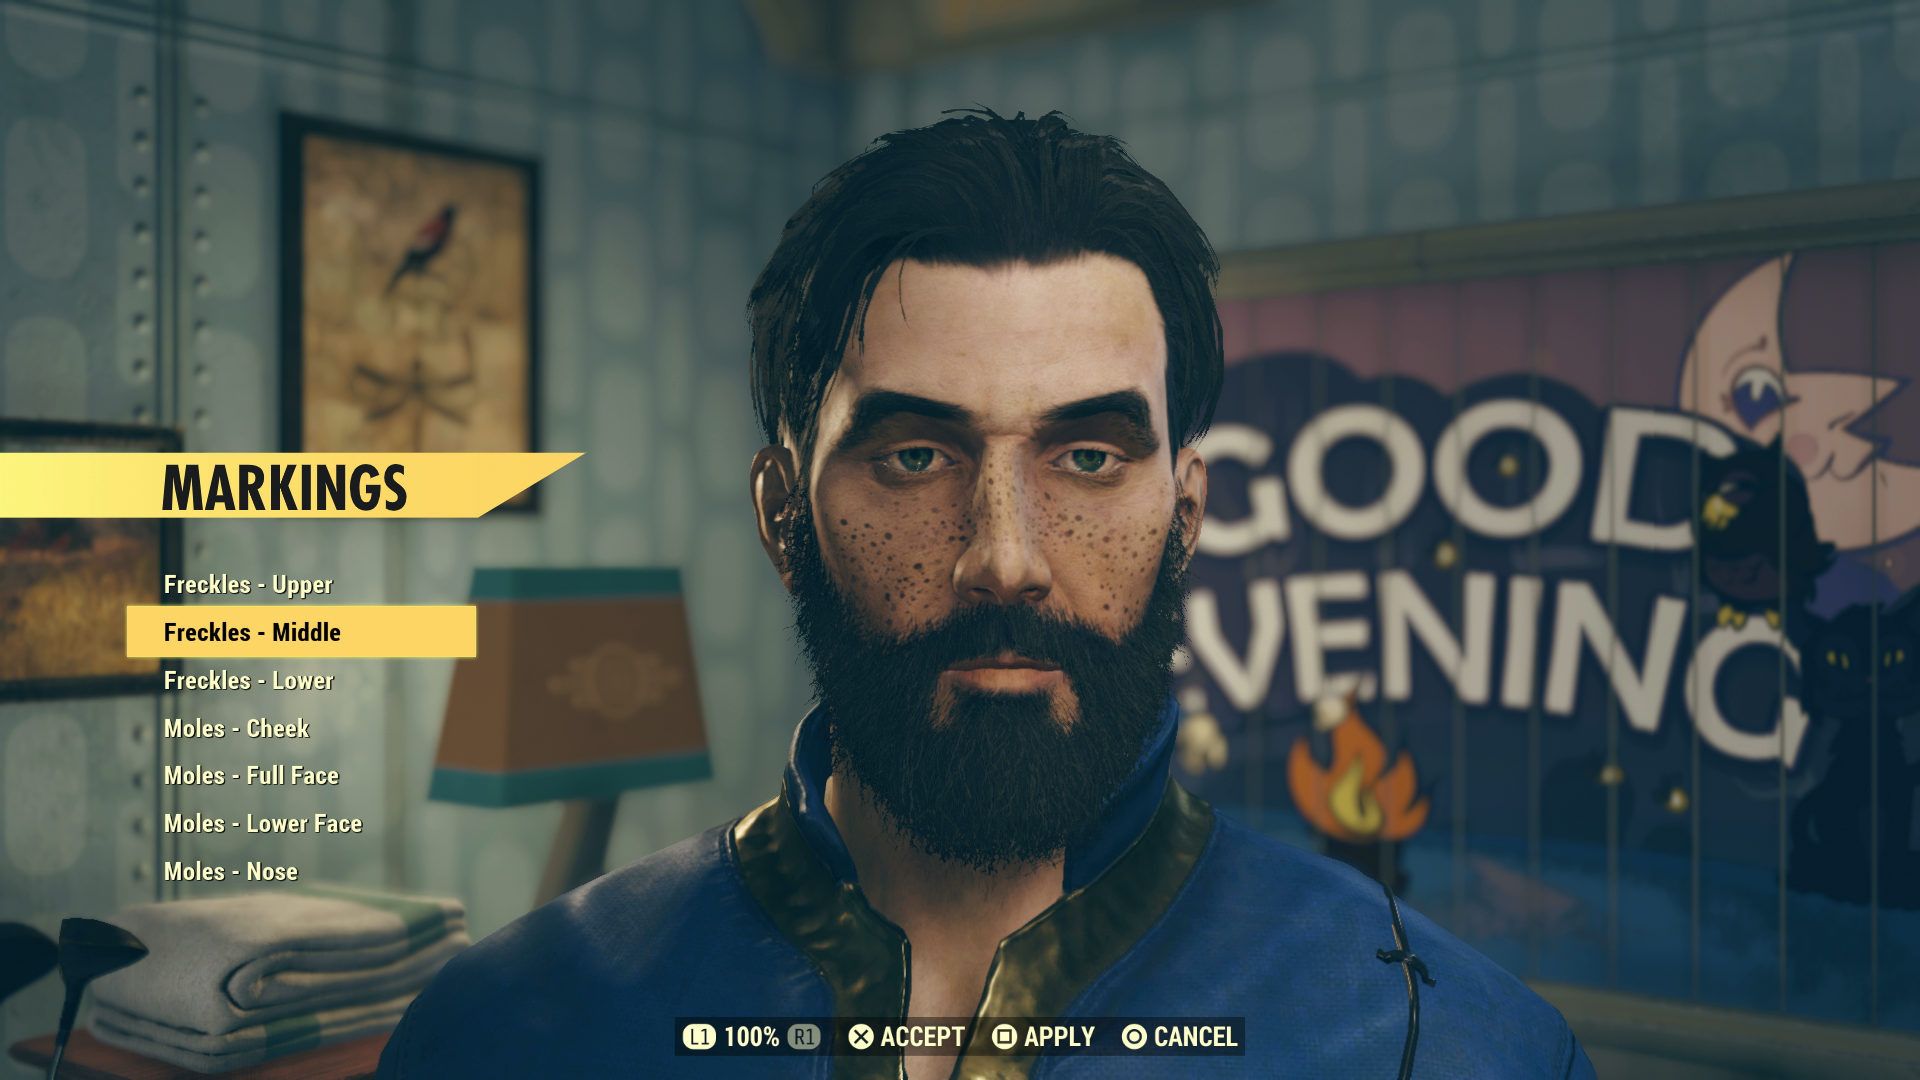 Fallout 76 Character Creation - How to Change Appearance